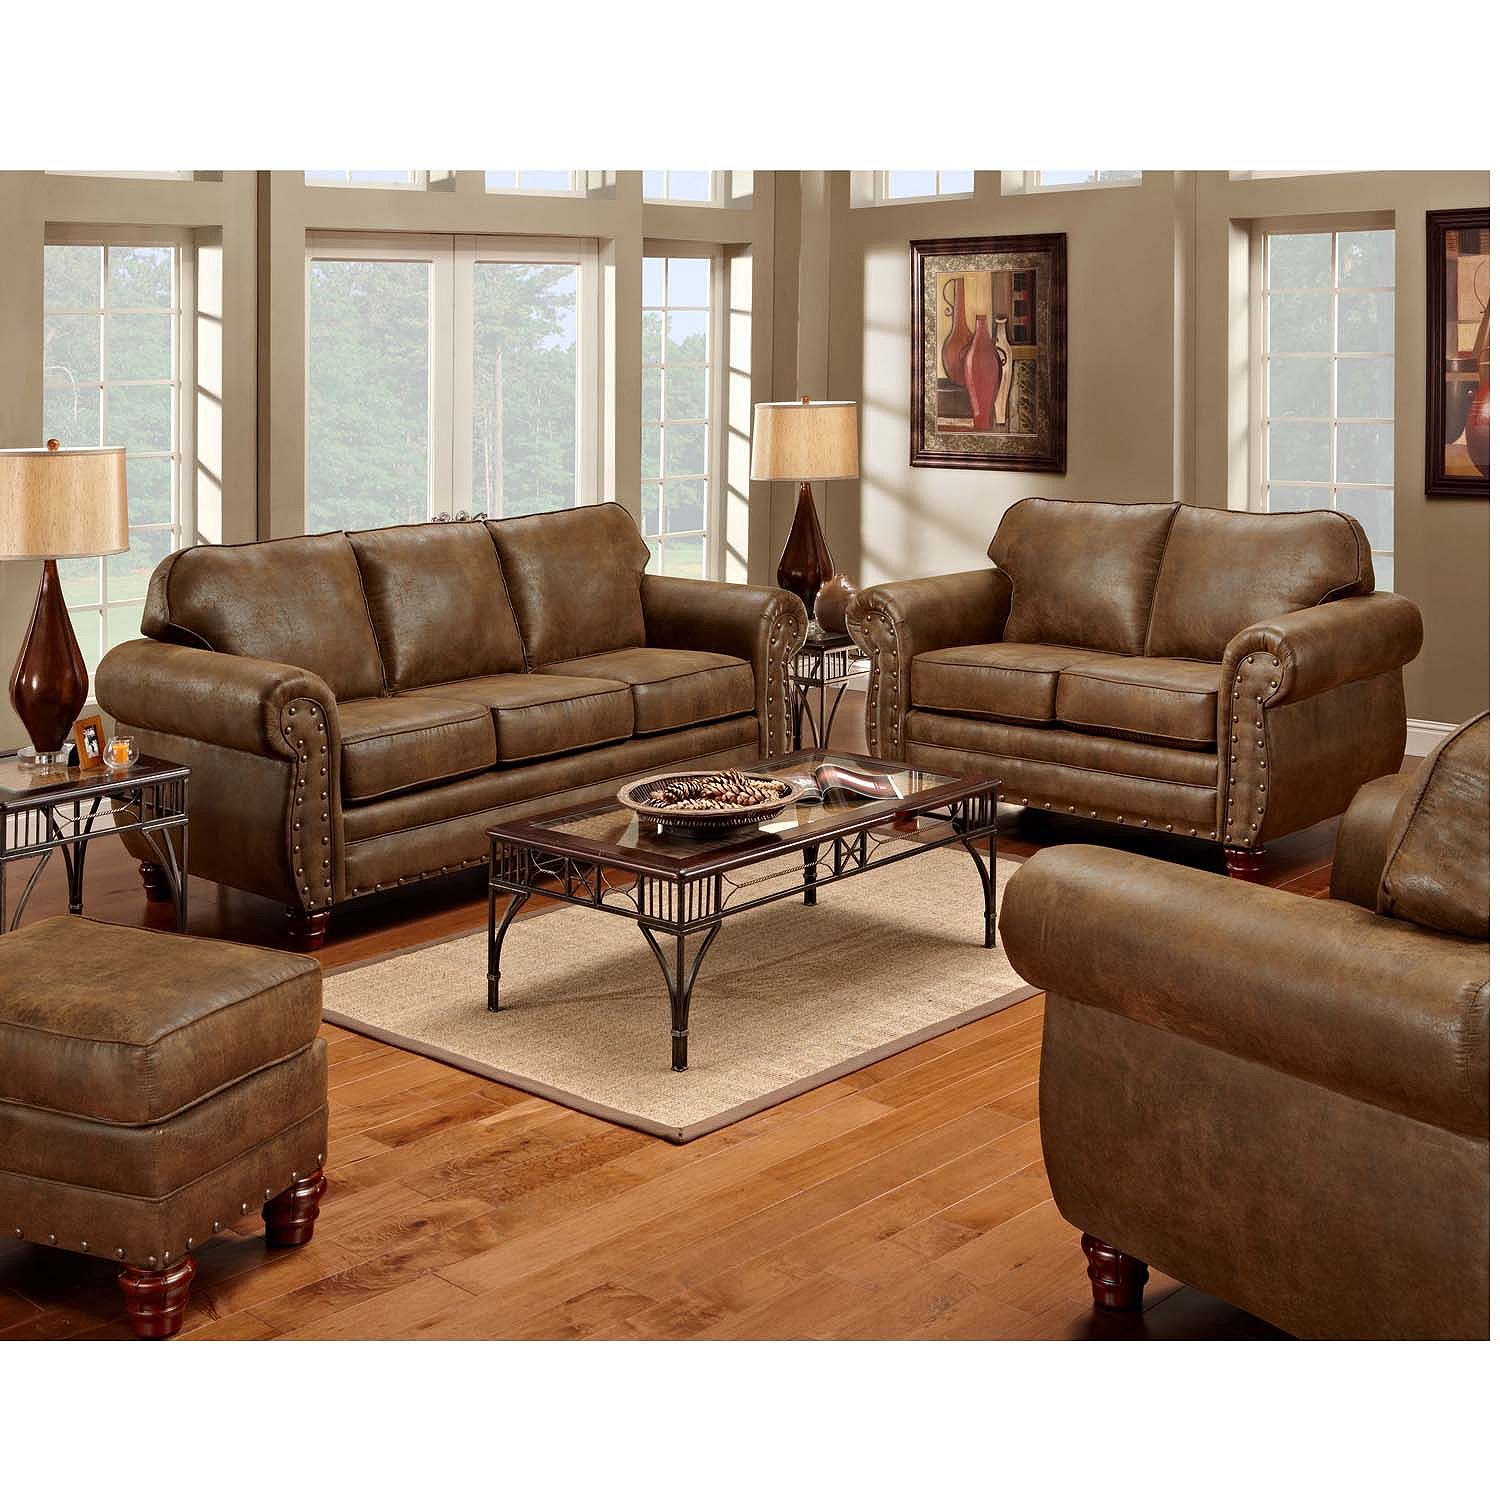 best rated living room furniture top 4 comfortable chairs for living room homesfeed 22658